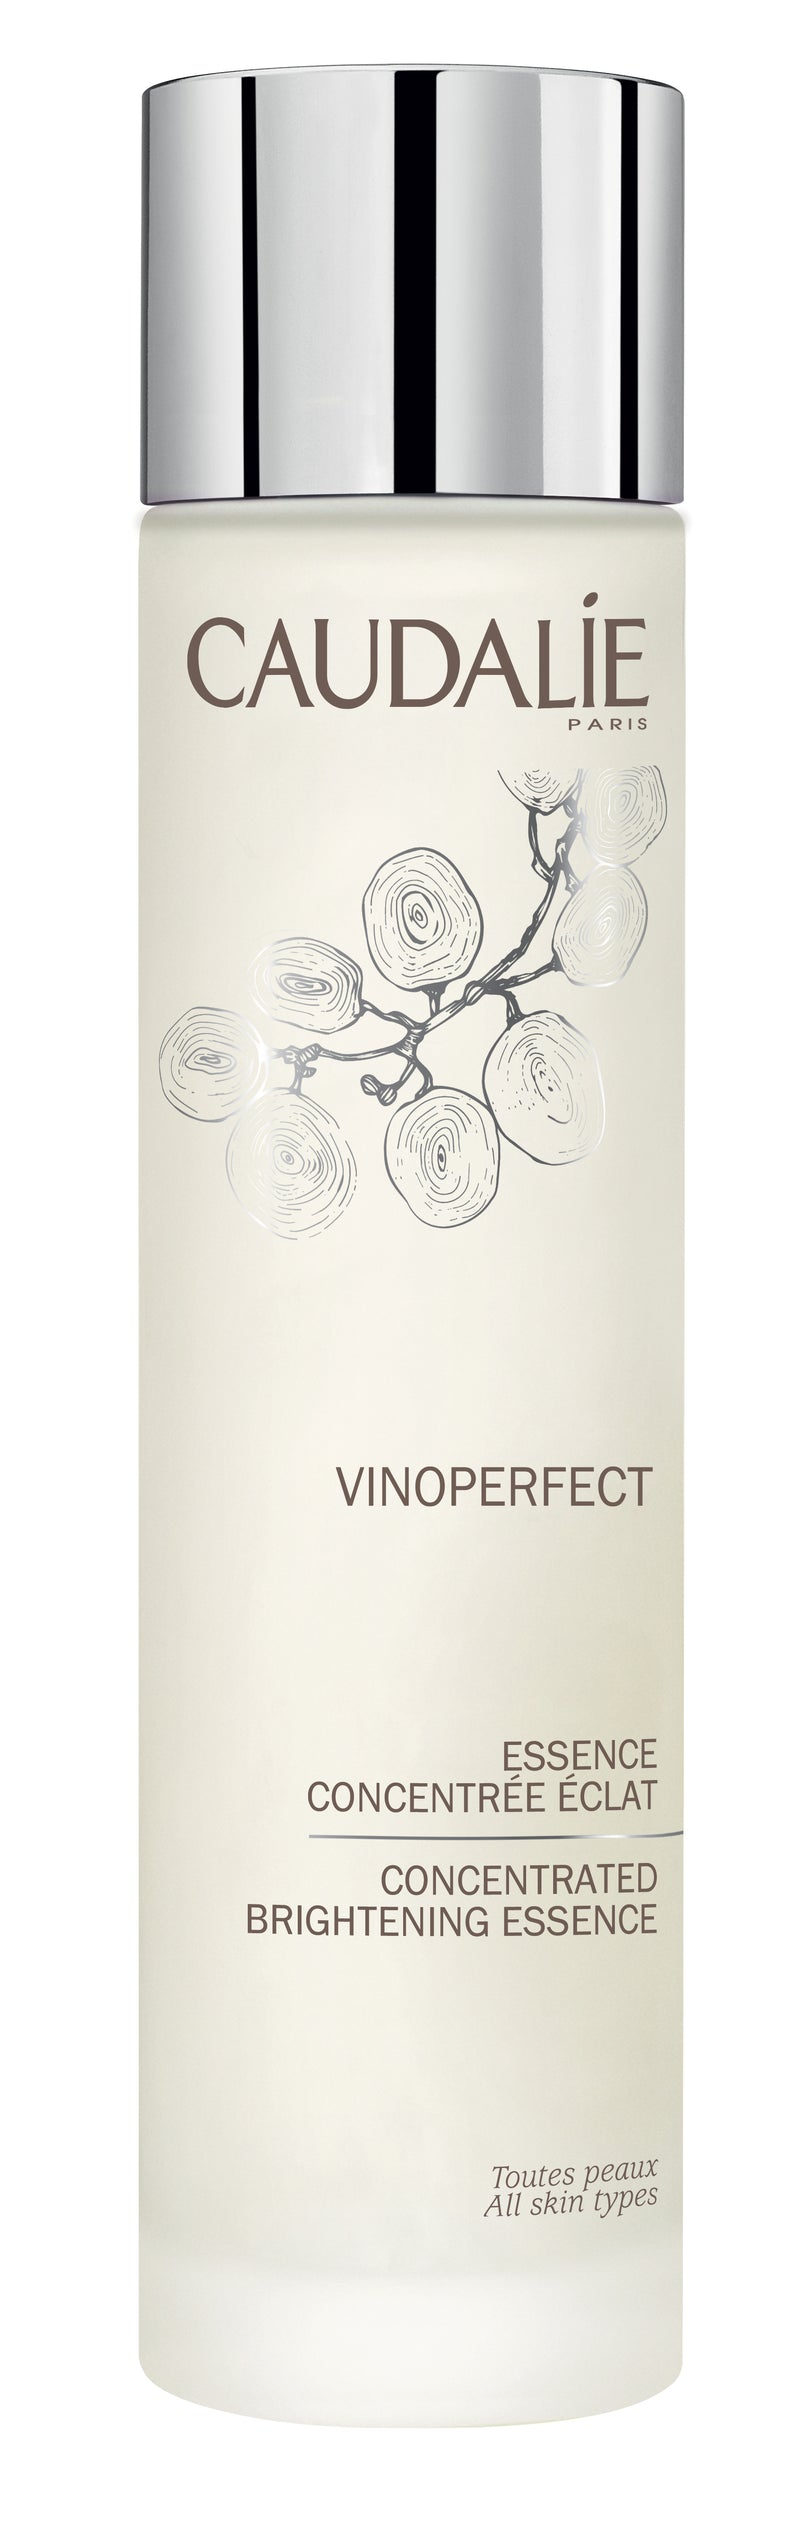 Vinoperfect Concentrated Brightening Essence